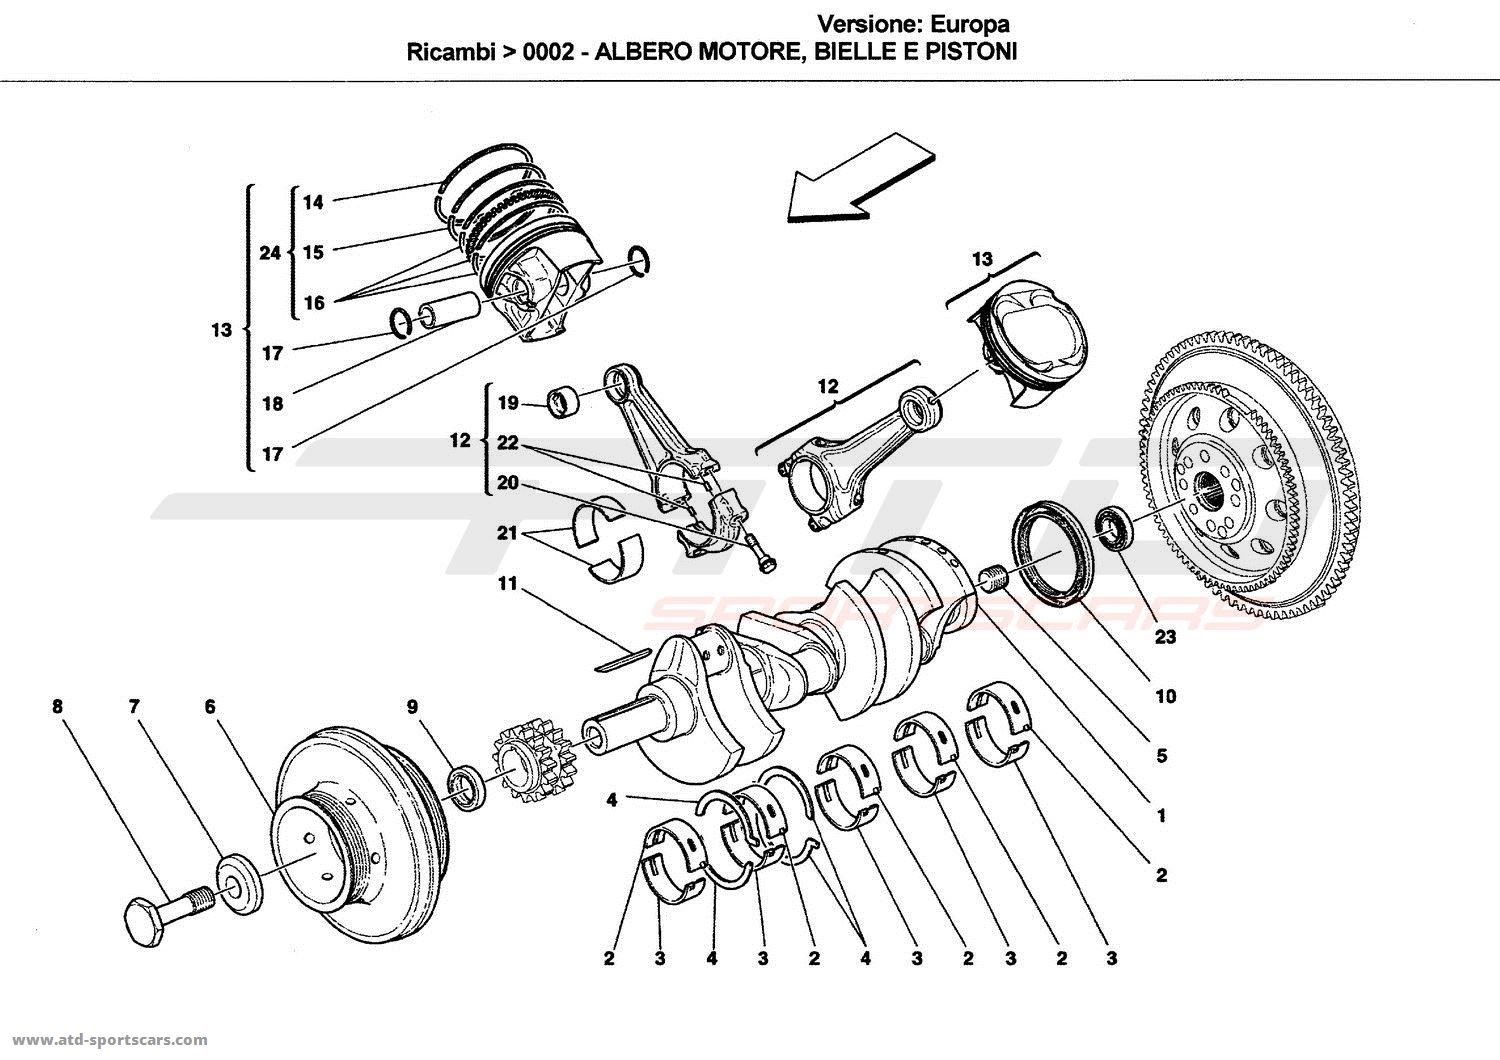 Service manual [How To Replace Crankshaft Seal On A 1995